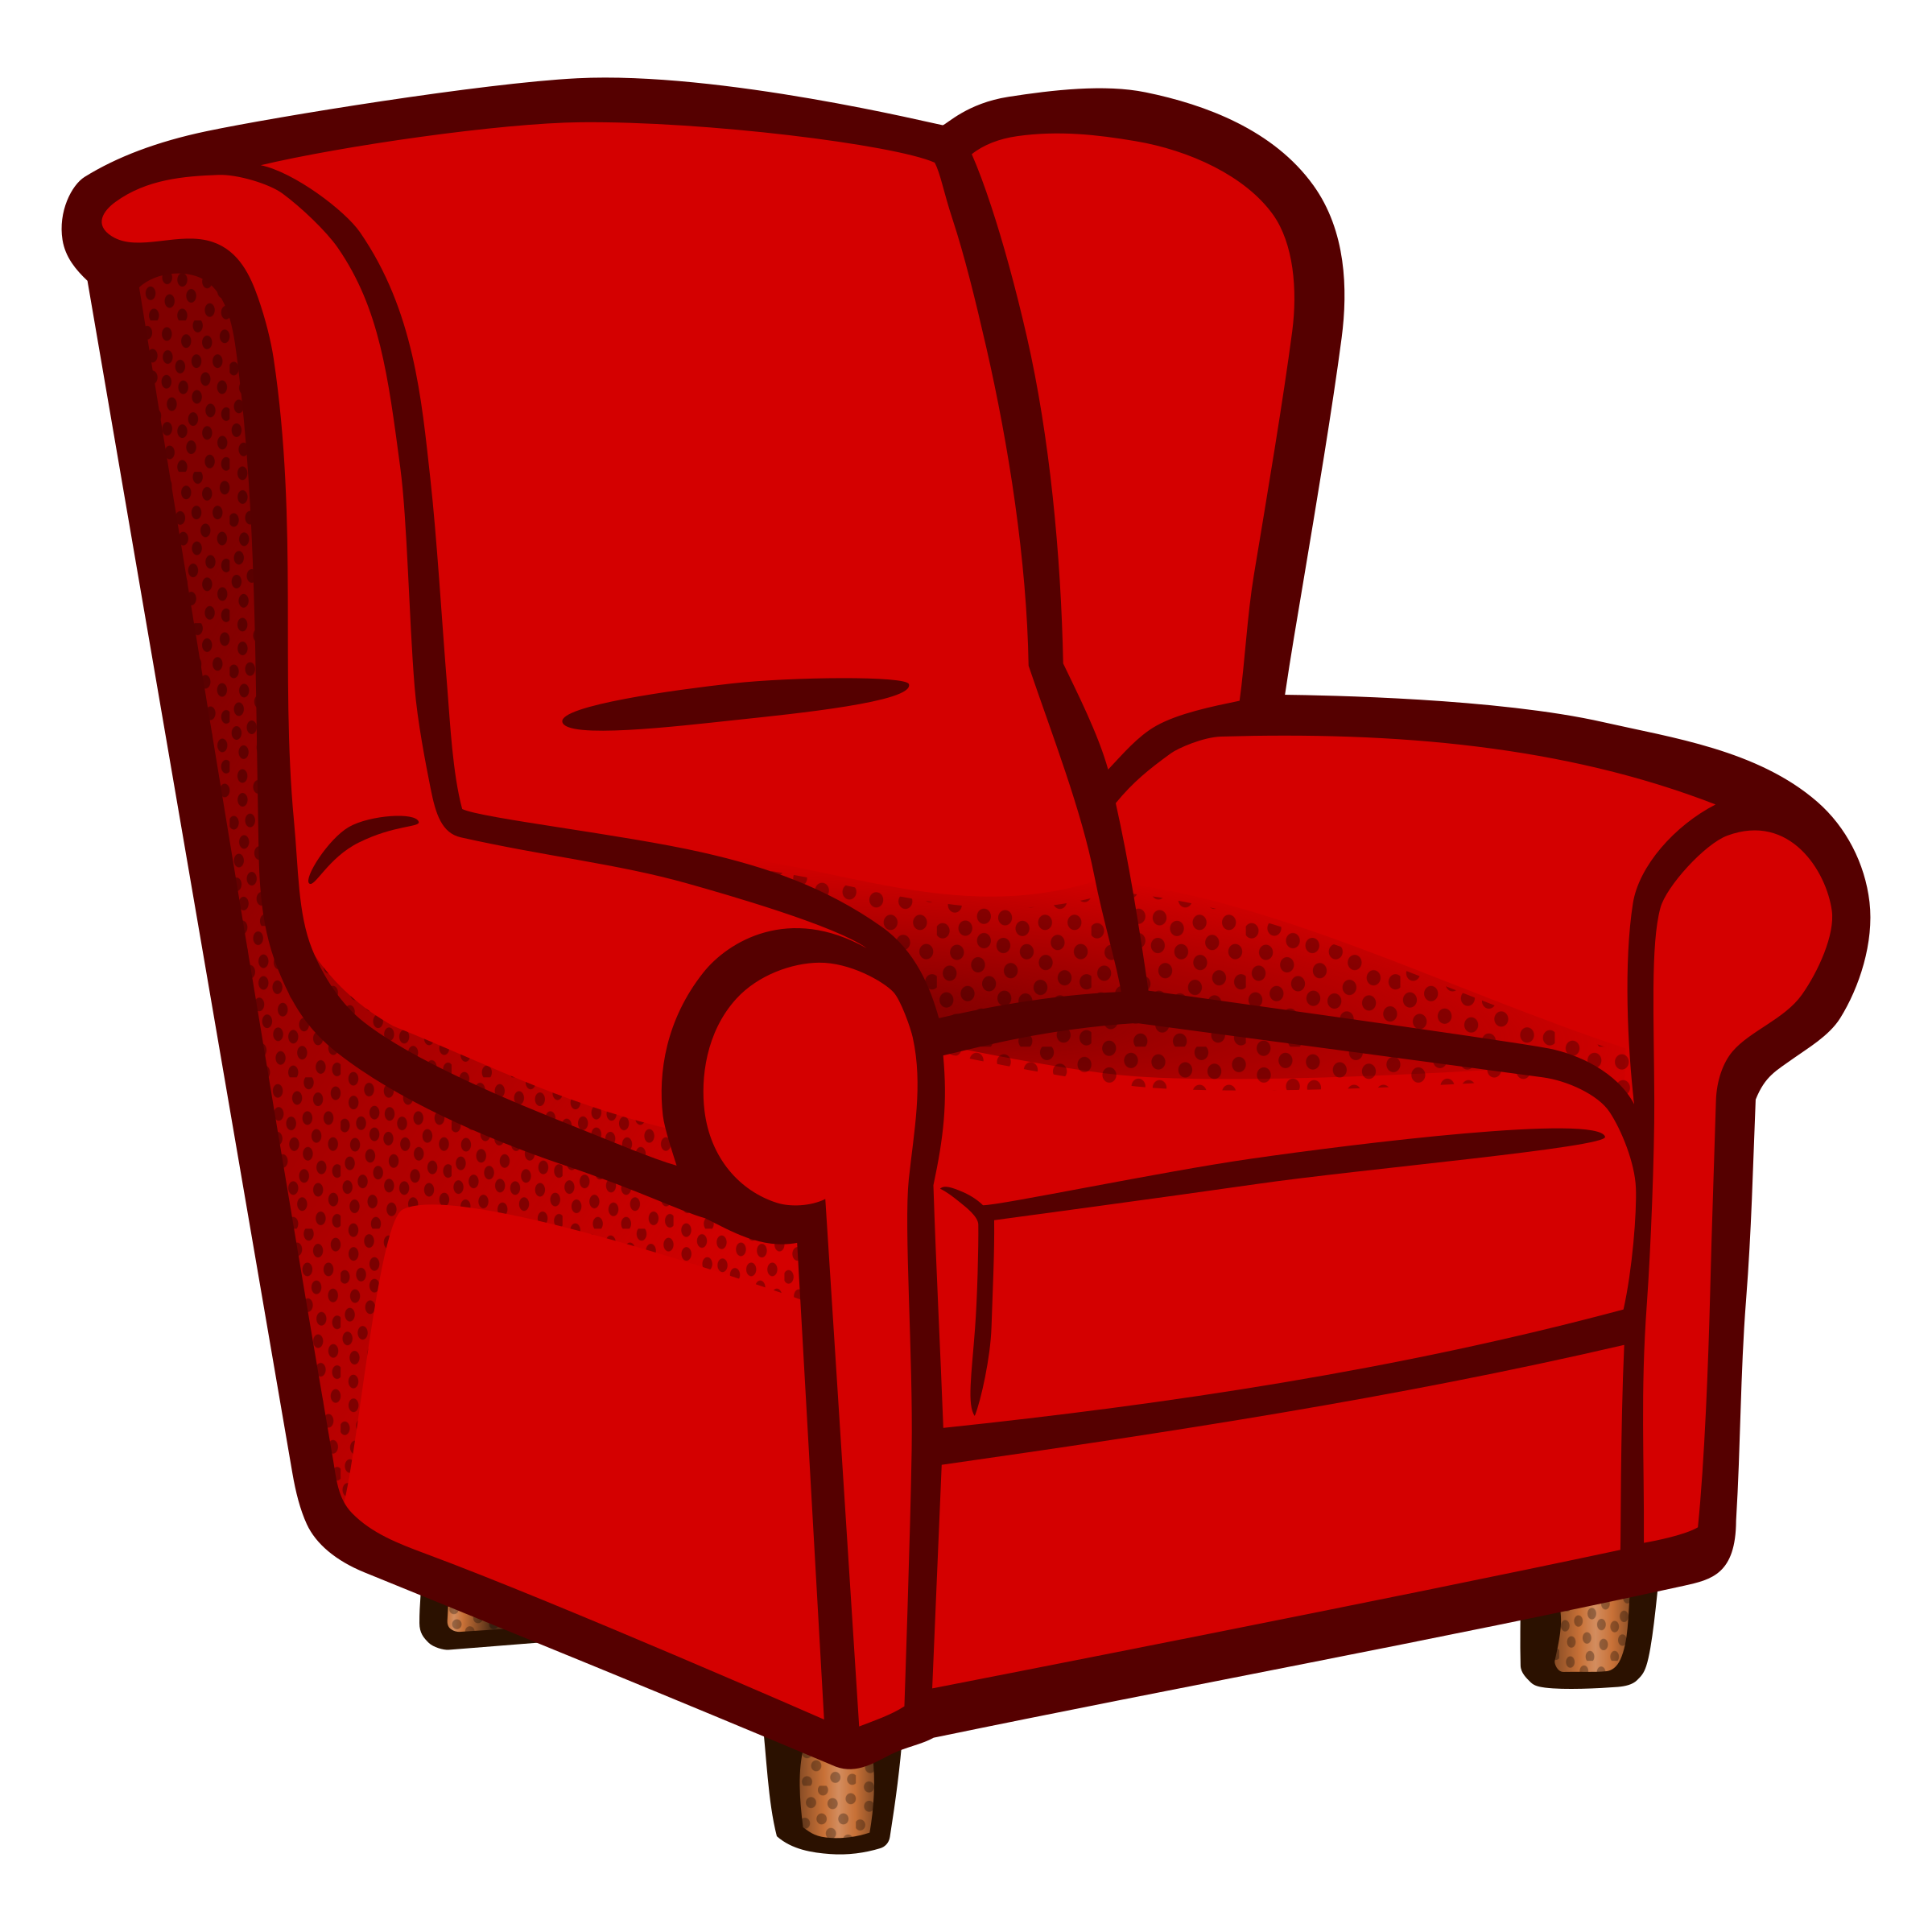 Sessel clipart  Clipart - armchair - coloured